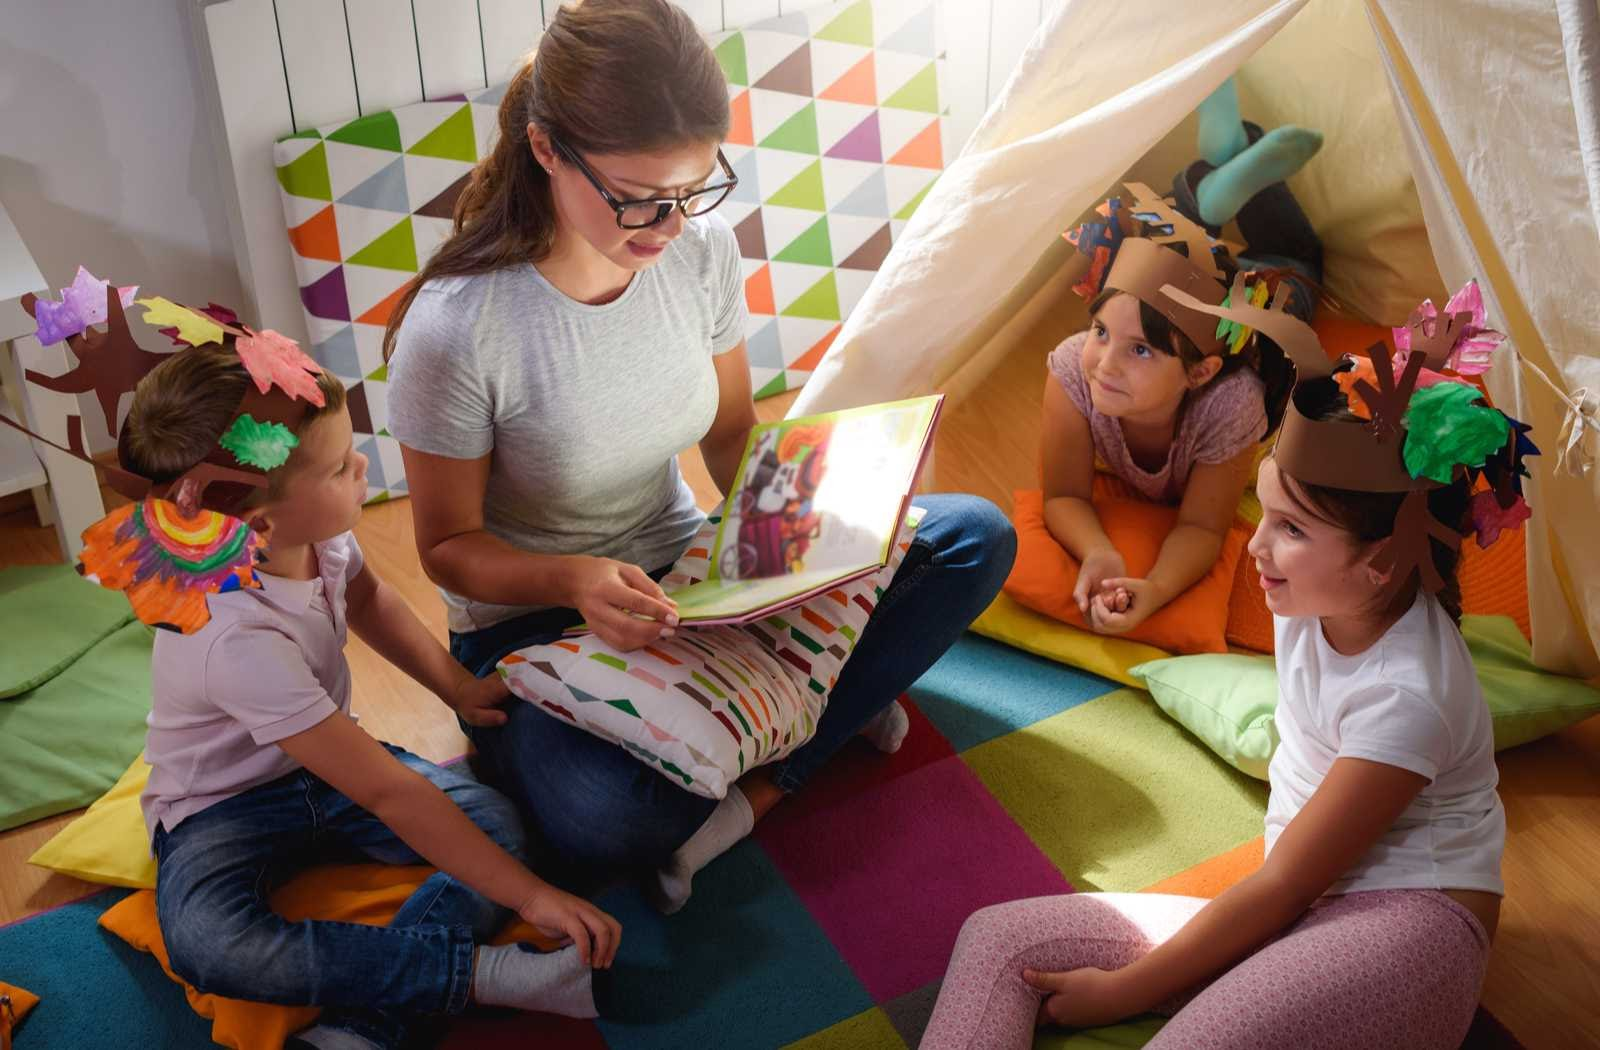 young woman reading to daycare children wearing paper crafts on their heads